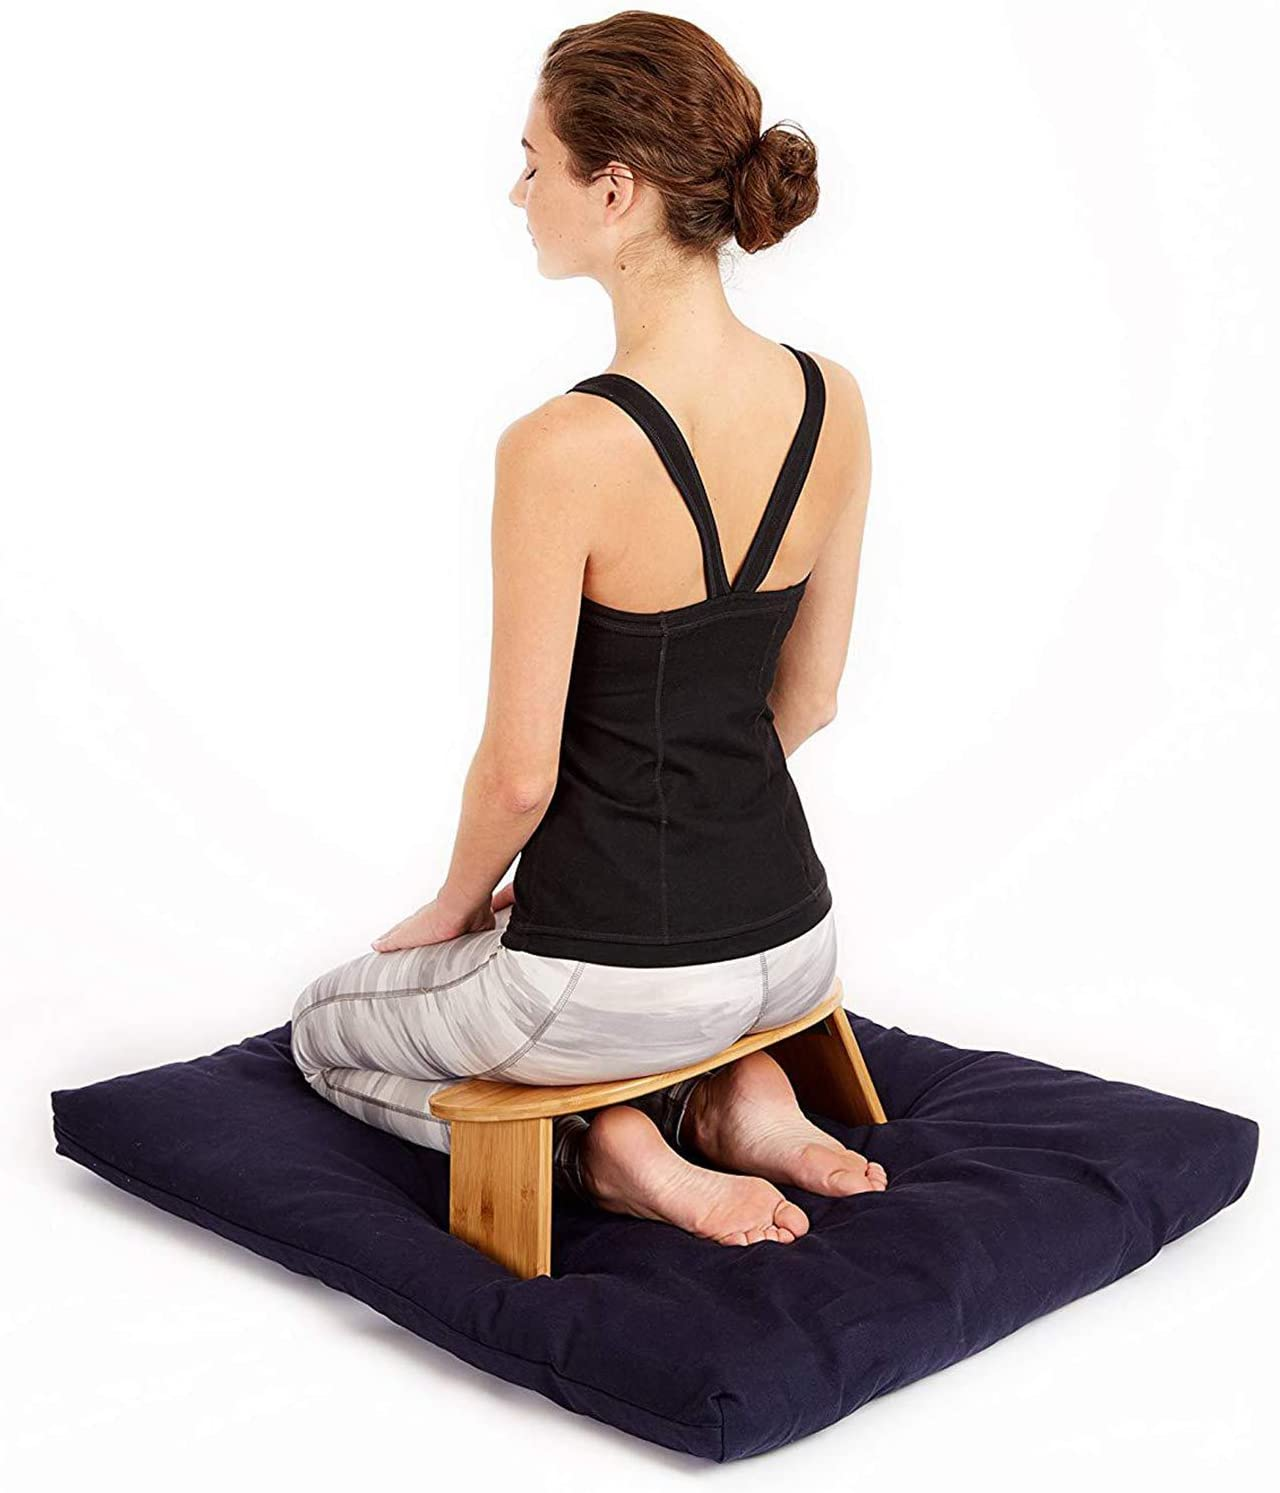 Portable Meditation Bench Finished Bamboo Low Legs Department store Se Daily bargain sale Folding